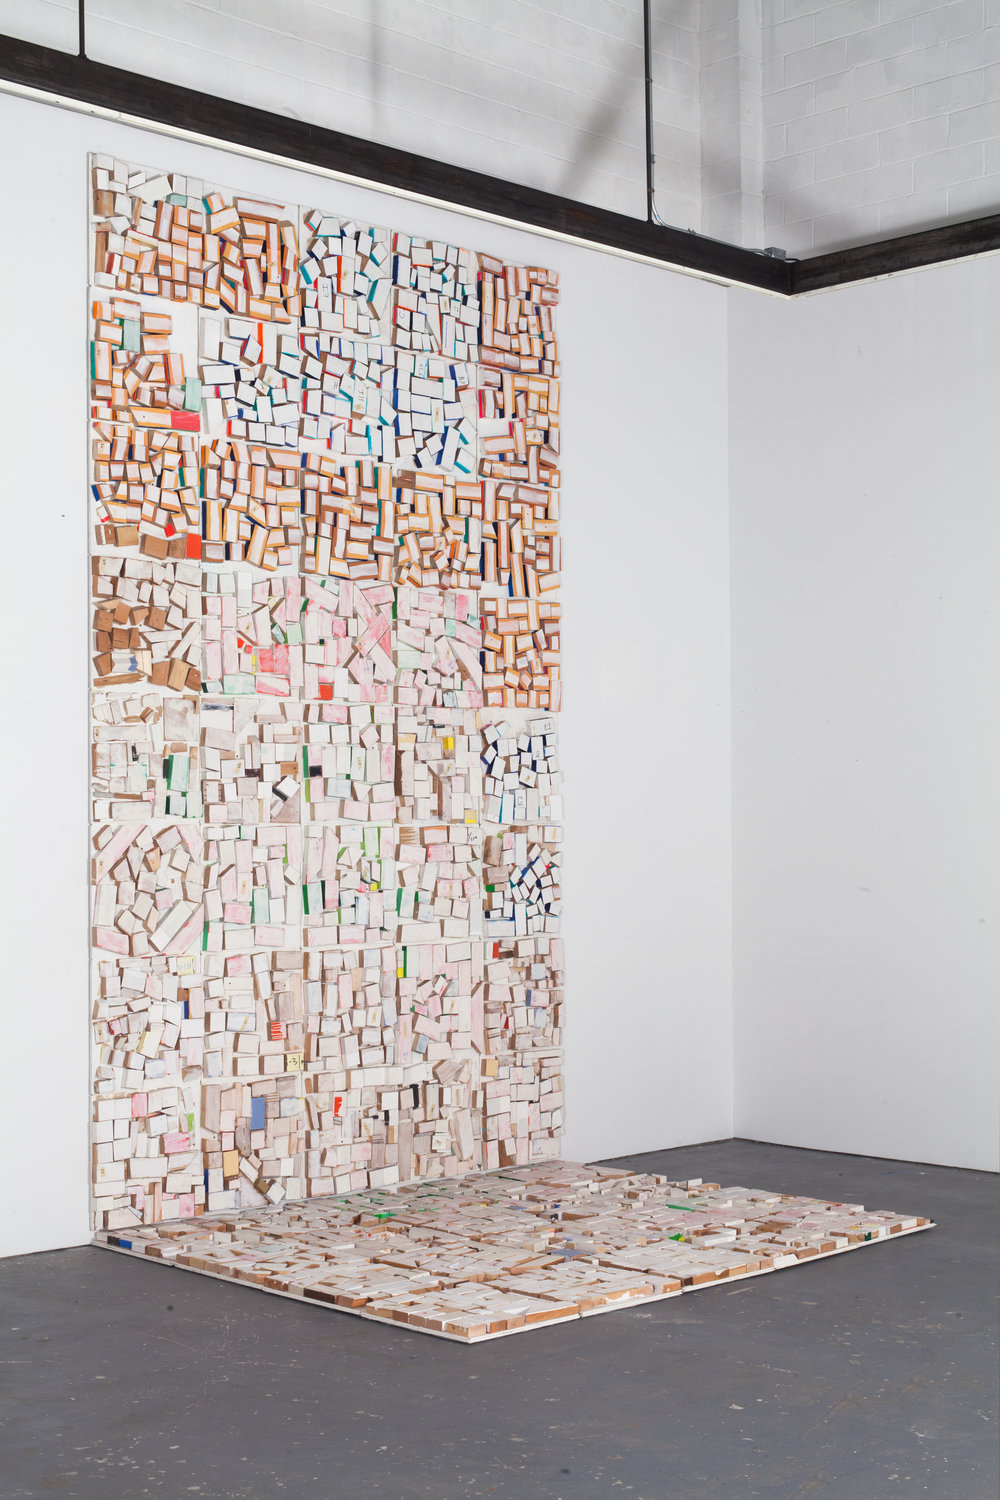 Cordy Ryman-Rafterweb Scrapwall V2-2012-2013-acrylic shellac and enamel on wood-30x10-side.jpg